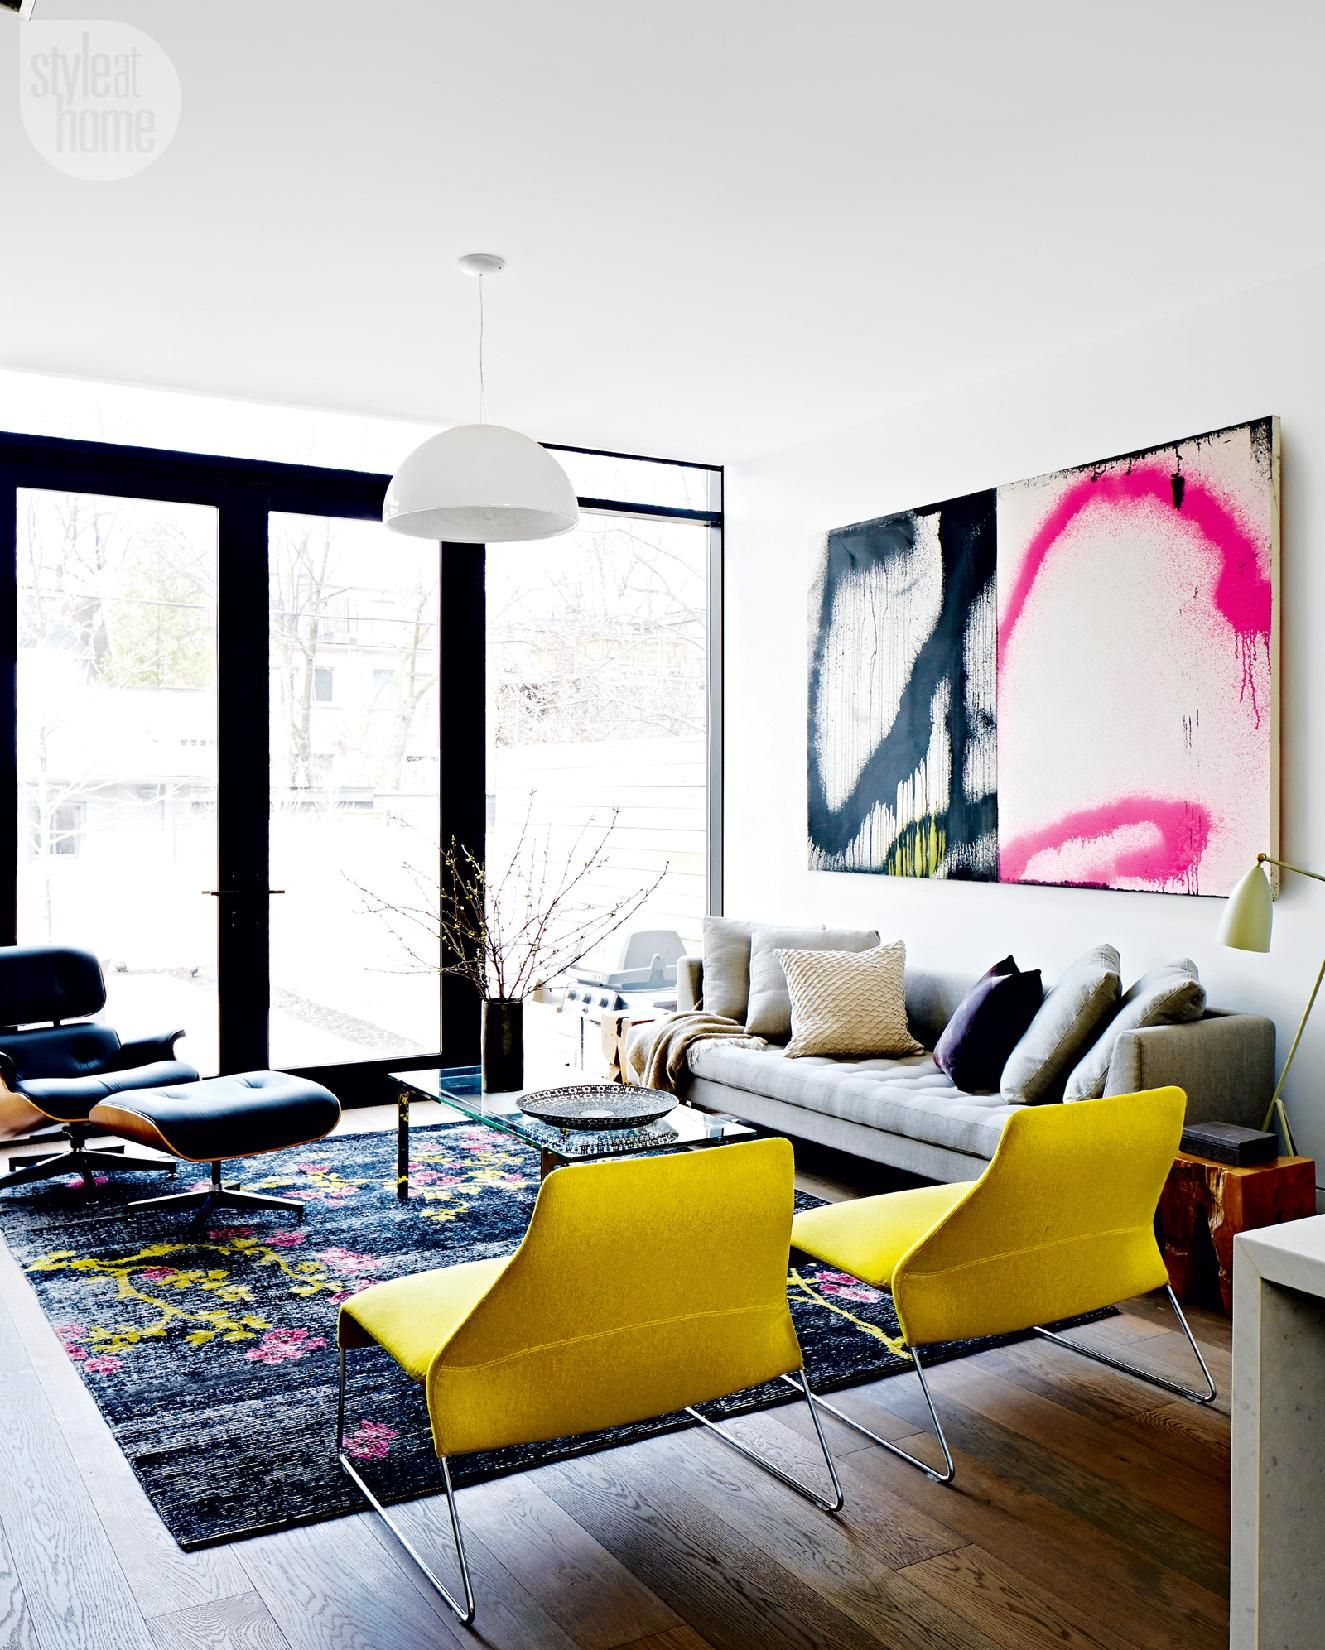 House tour: Dapper bachelor pad | House tours, House and Living rooms